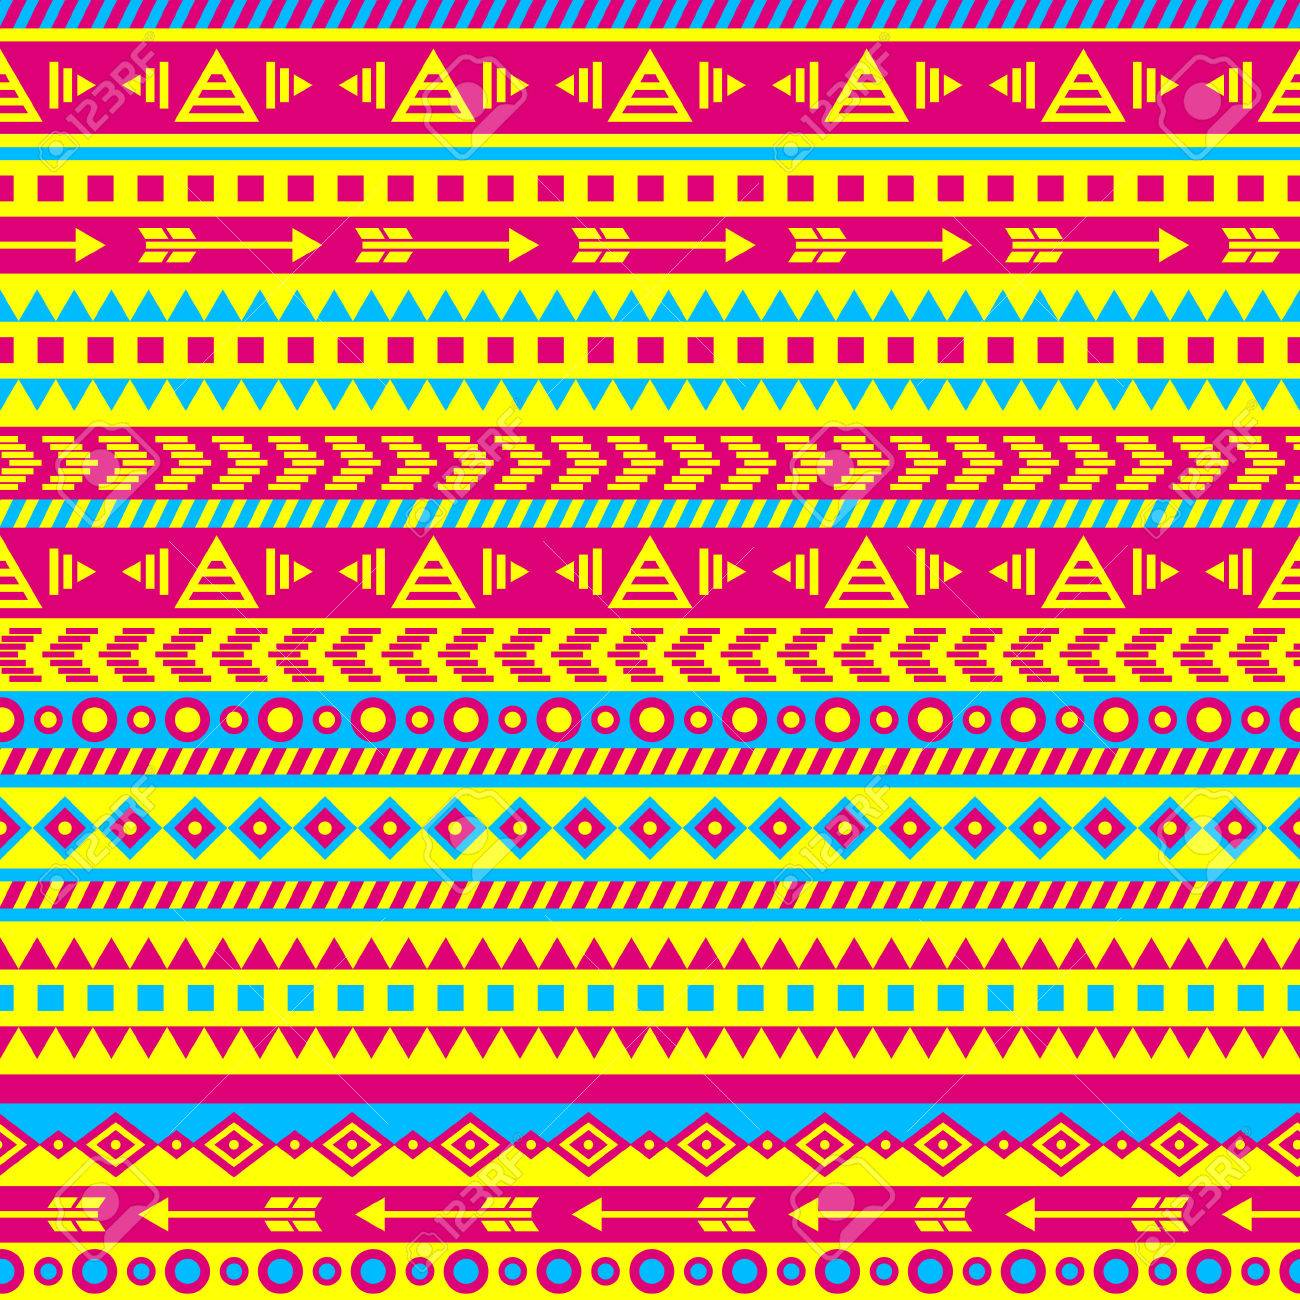 vector seamless aztec pattern in bright color scheme royalty free